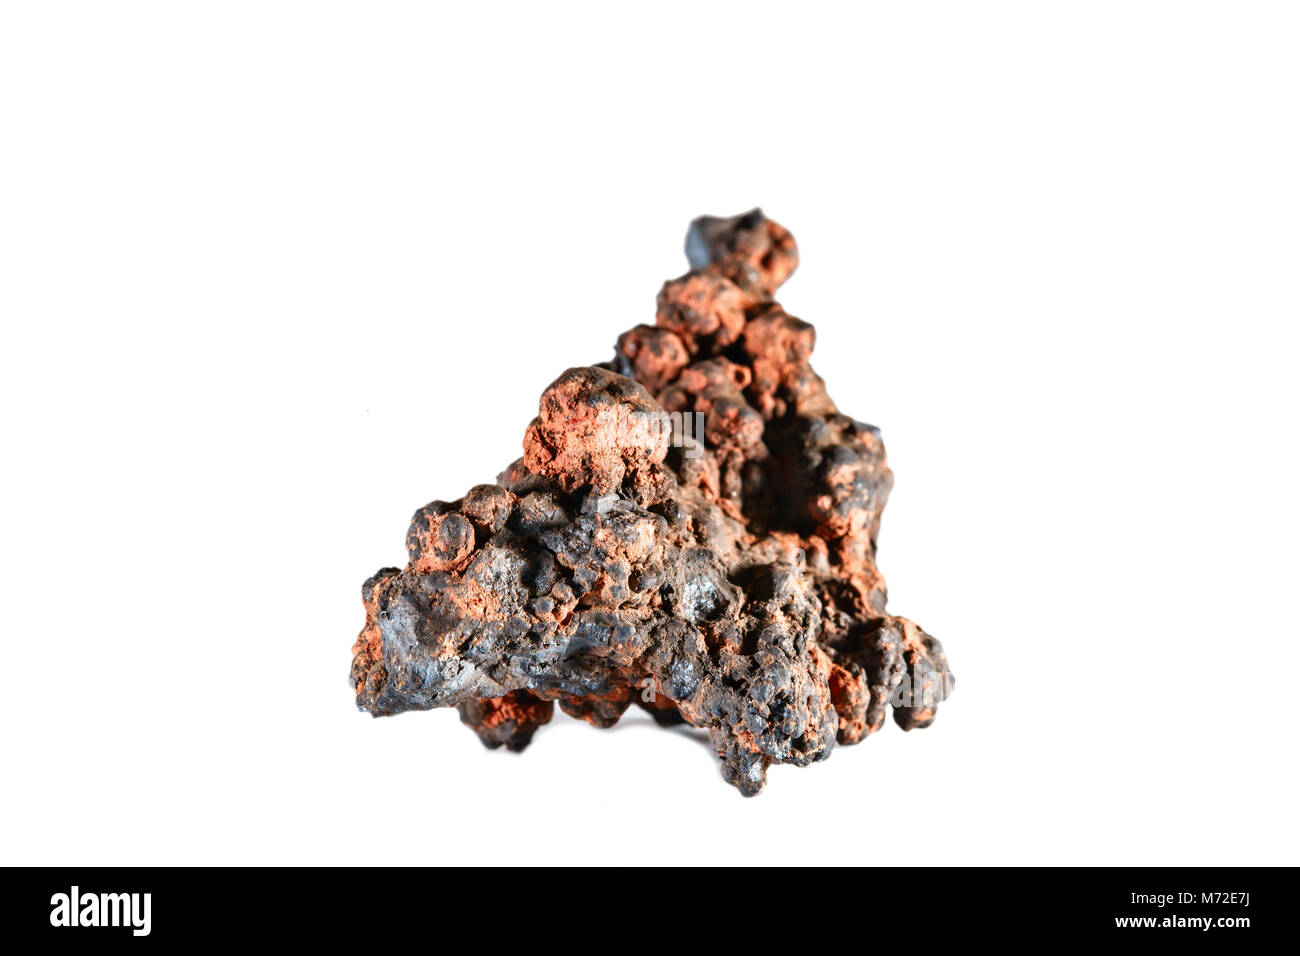 Macro shooting of natural gemstone. The raw mineral is goethite. Morocco. Isolated object on a white background. - Stock Image